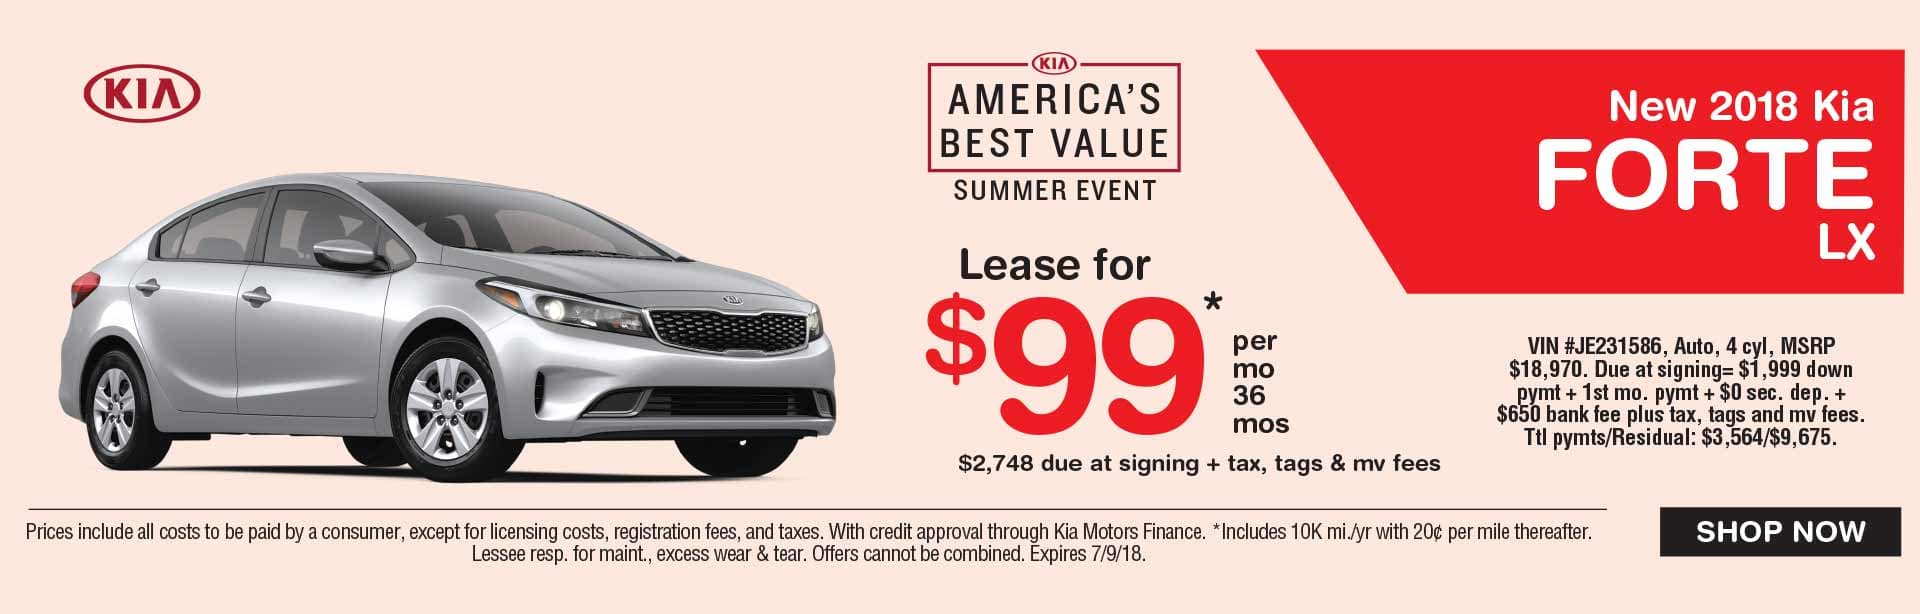 Global Kia Forte Lease Special